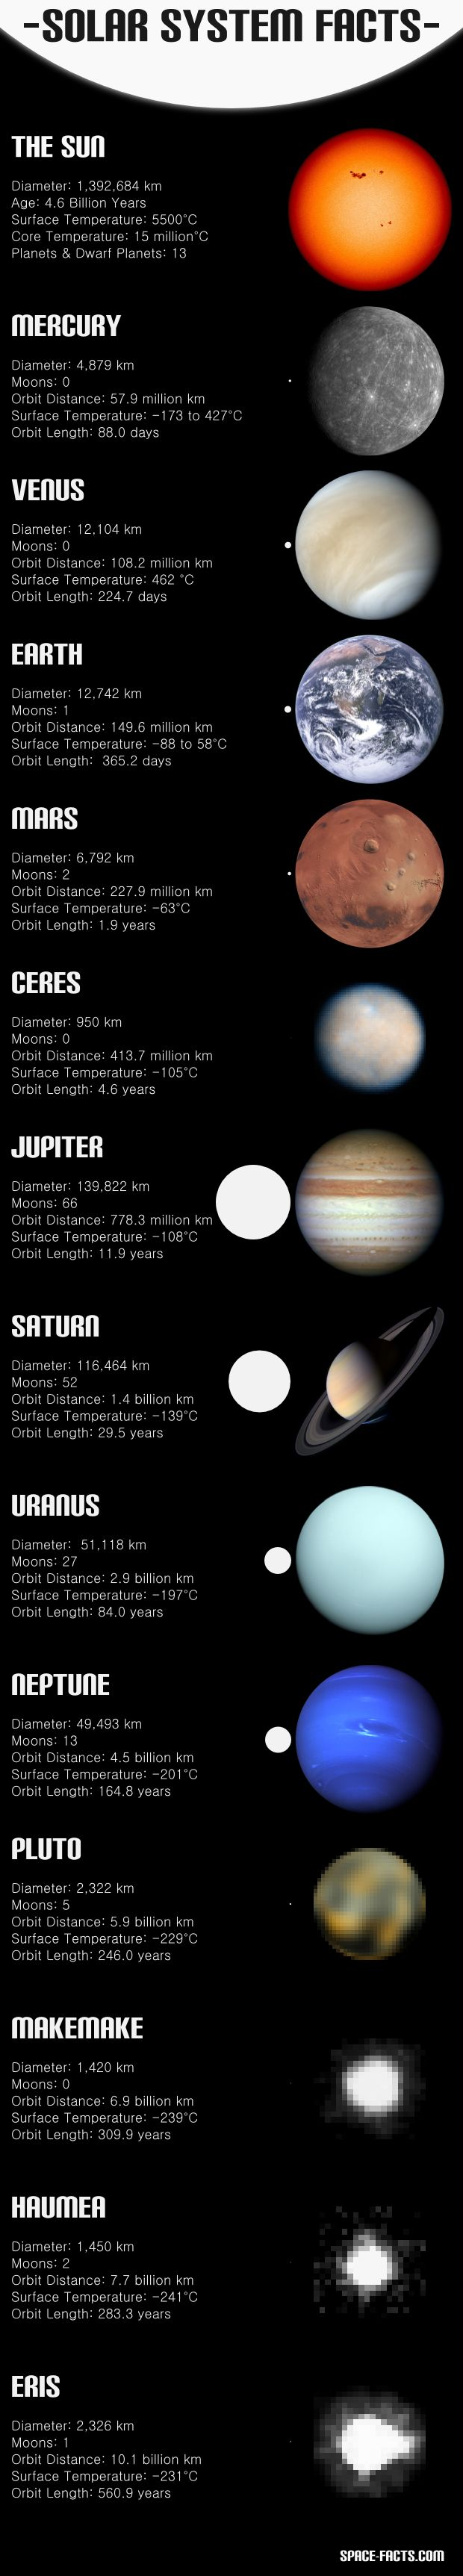 Solar System Facts. The last 4 are questionable. Pluto is no longer considered a planet and if it is now just an asteroid, then the last 3 are probably just asteroids as well.